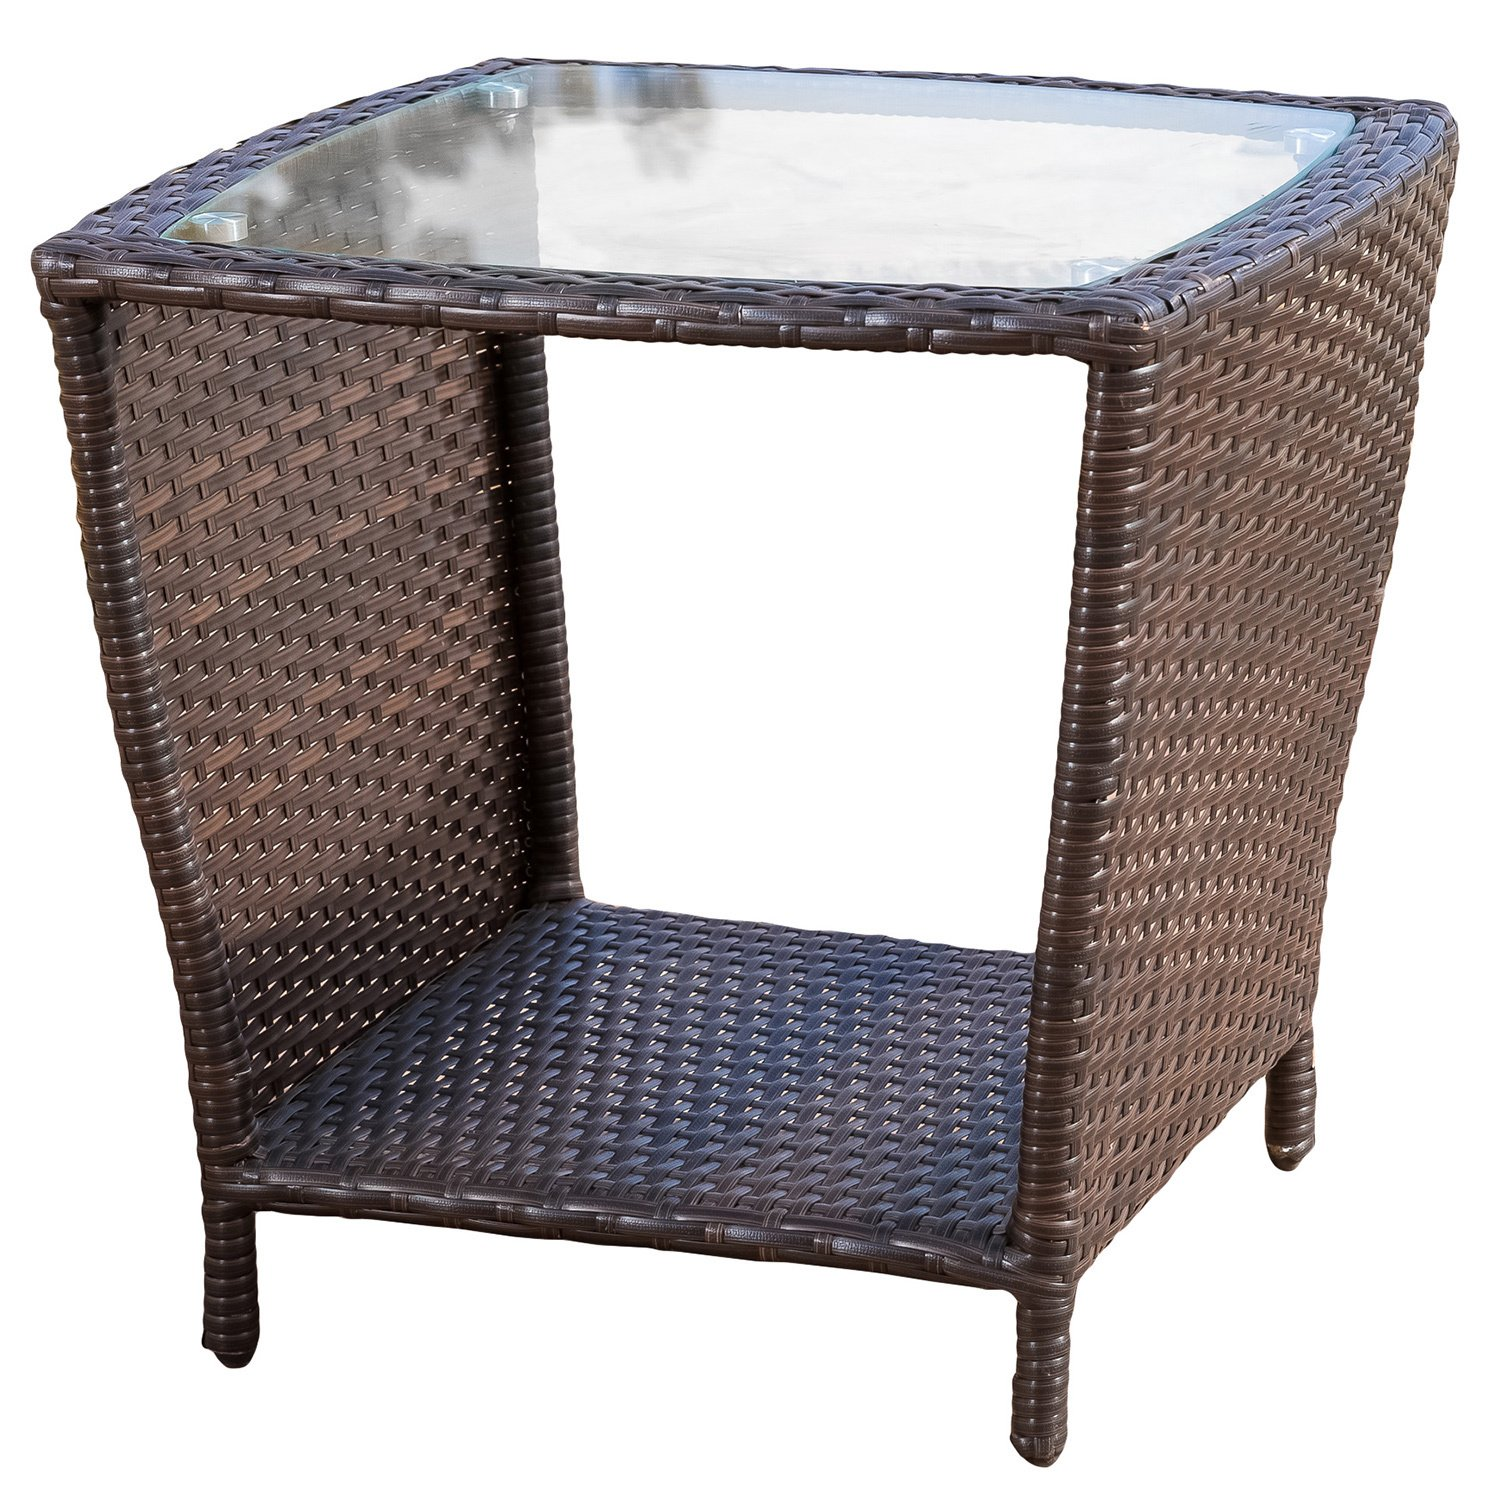 weston outdoor wicker side table with glass top christopher knight home brown free shipping today black and white decorations large round dining dale tiffany dragonfly lily lamp